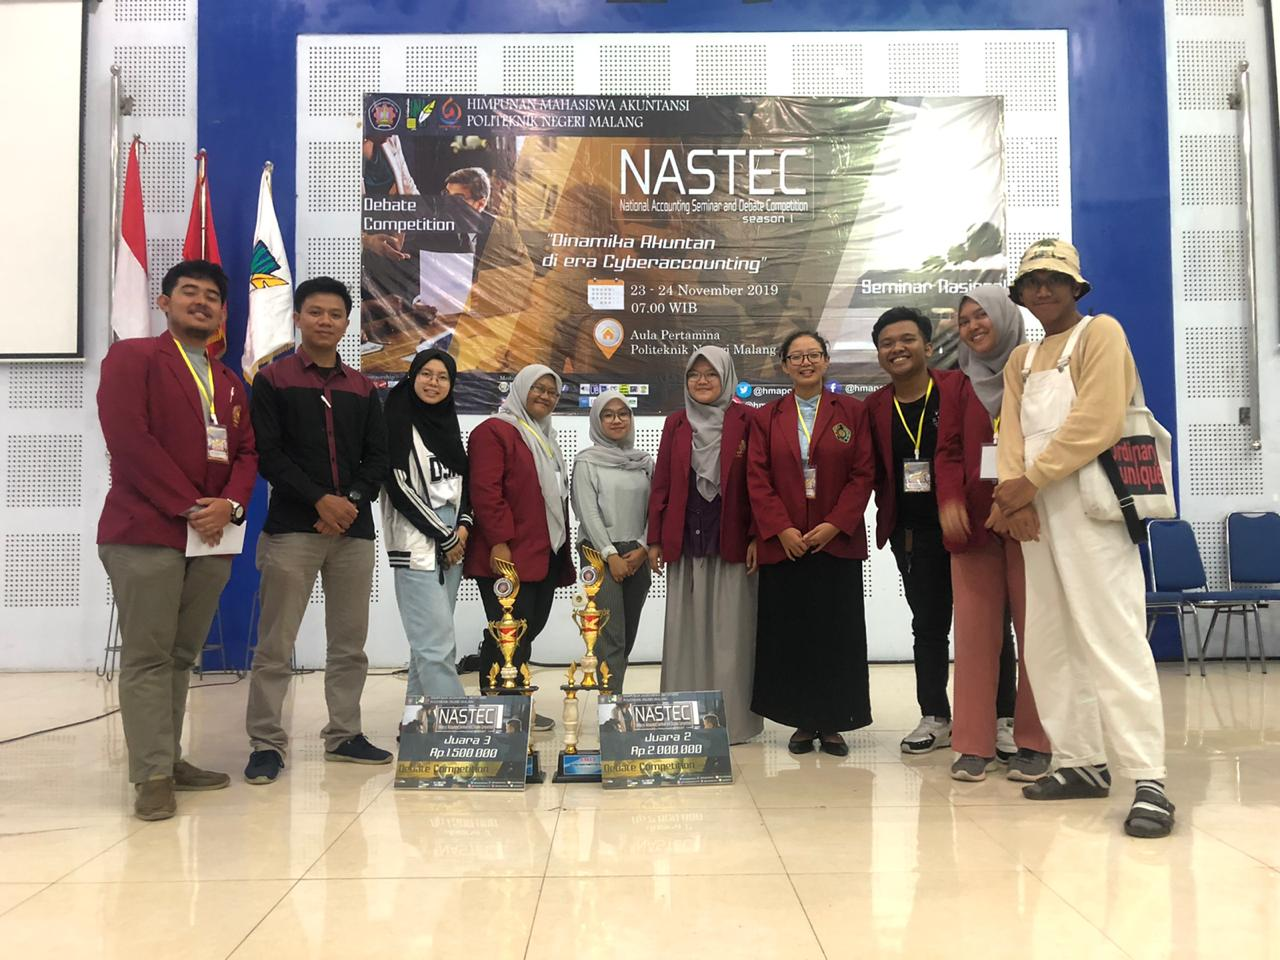 Delegations from Team A and Team C from UMM took a photo with the Cup at NASTEC (PHOTO: Special)